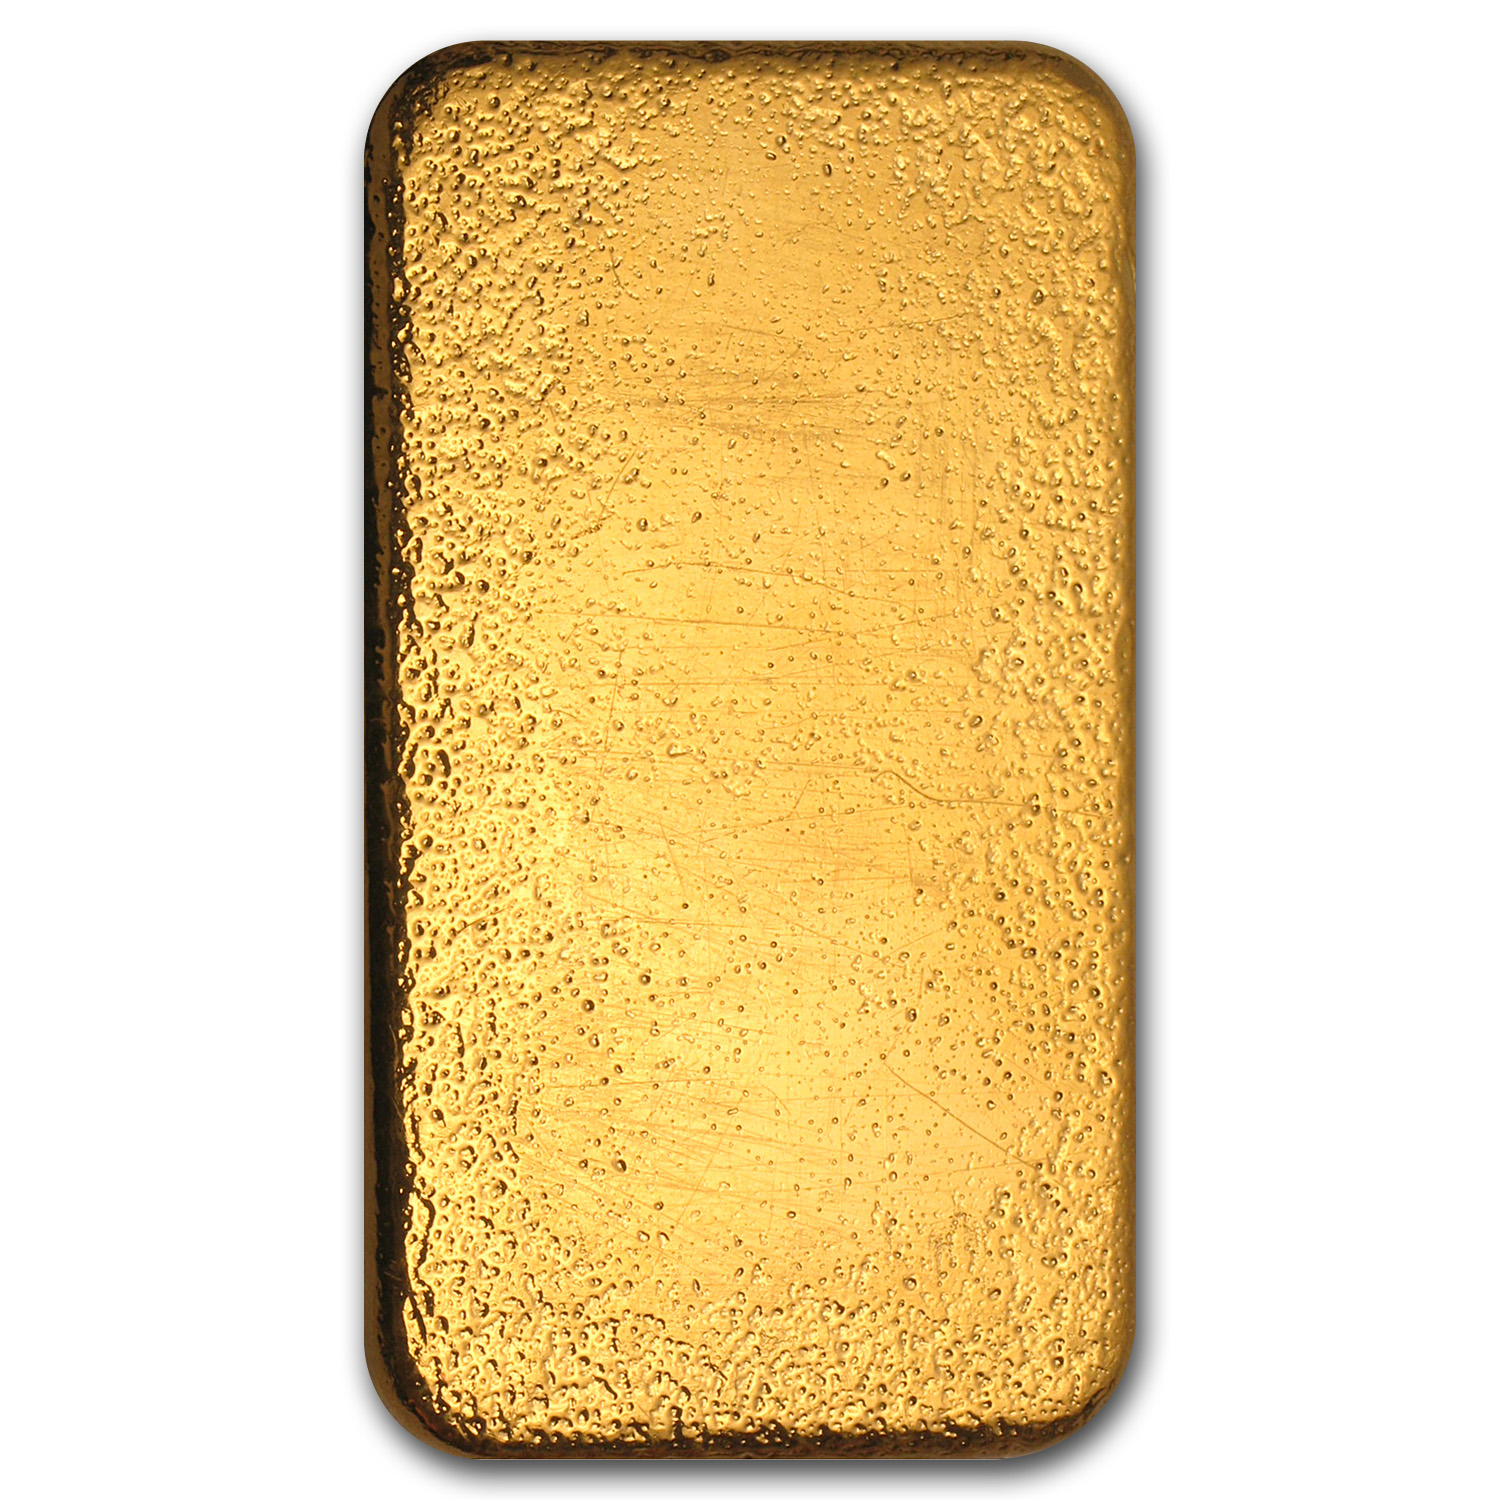 250 gram Gold Bar - Pamp Suisse (w/o Assay)